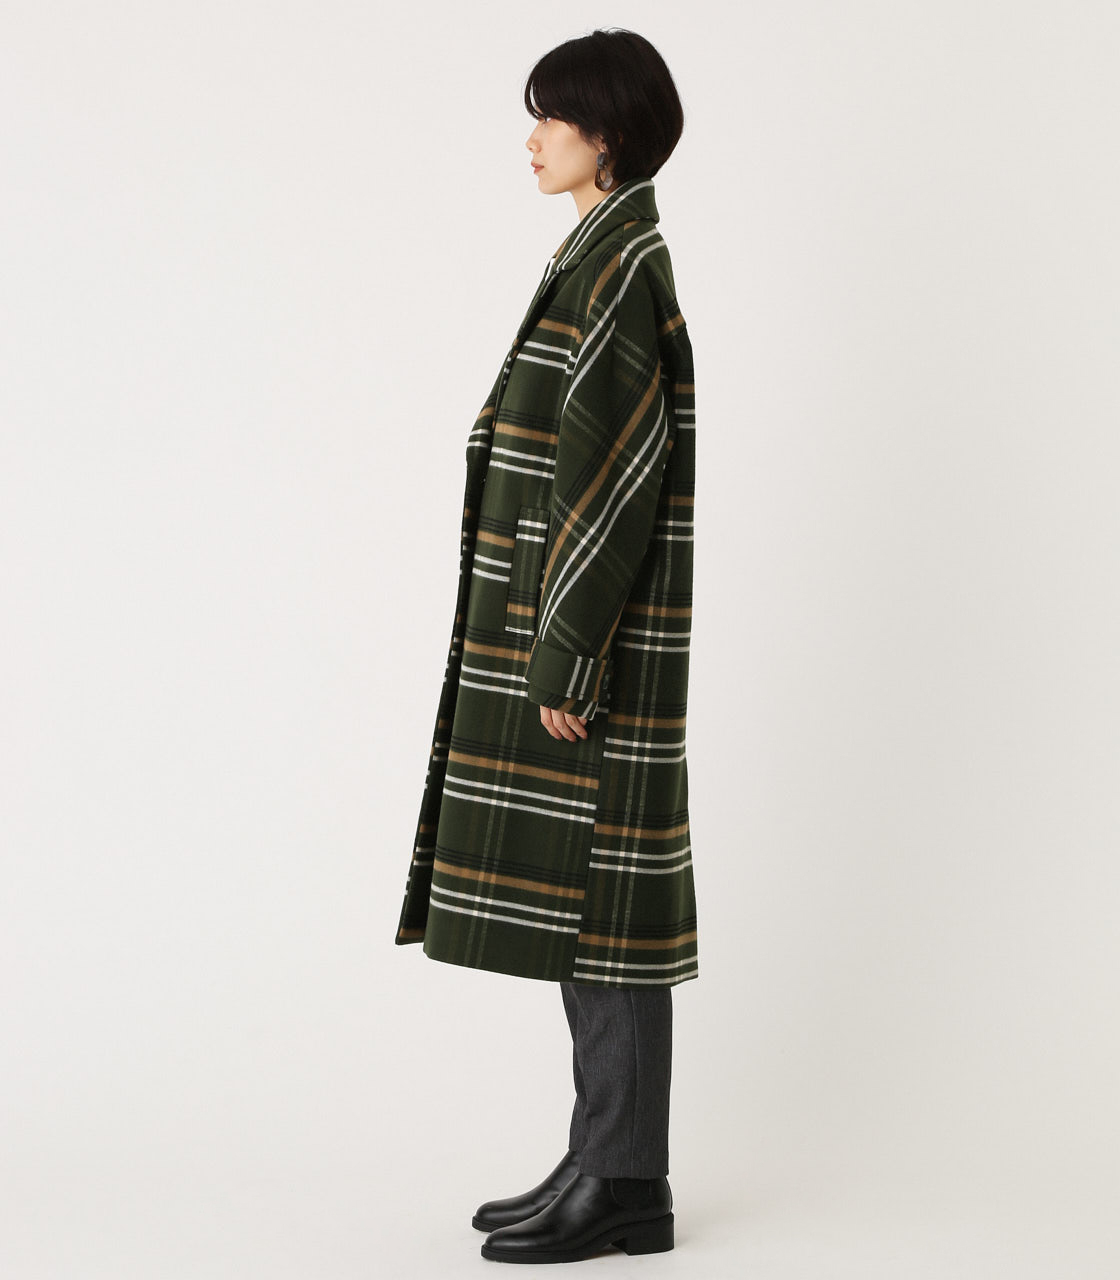 OVER LOOSE CHESTER COAT/オーバールーズチェスターコート 詳細画像 柄GRN 5